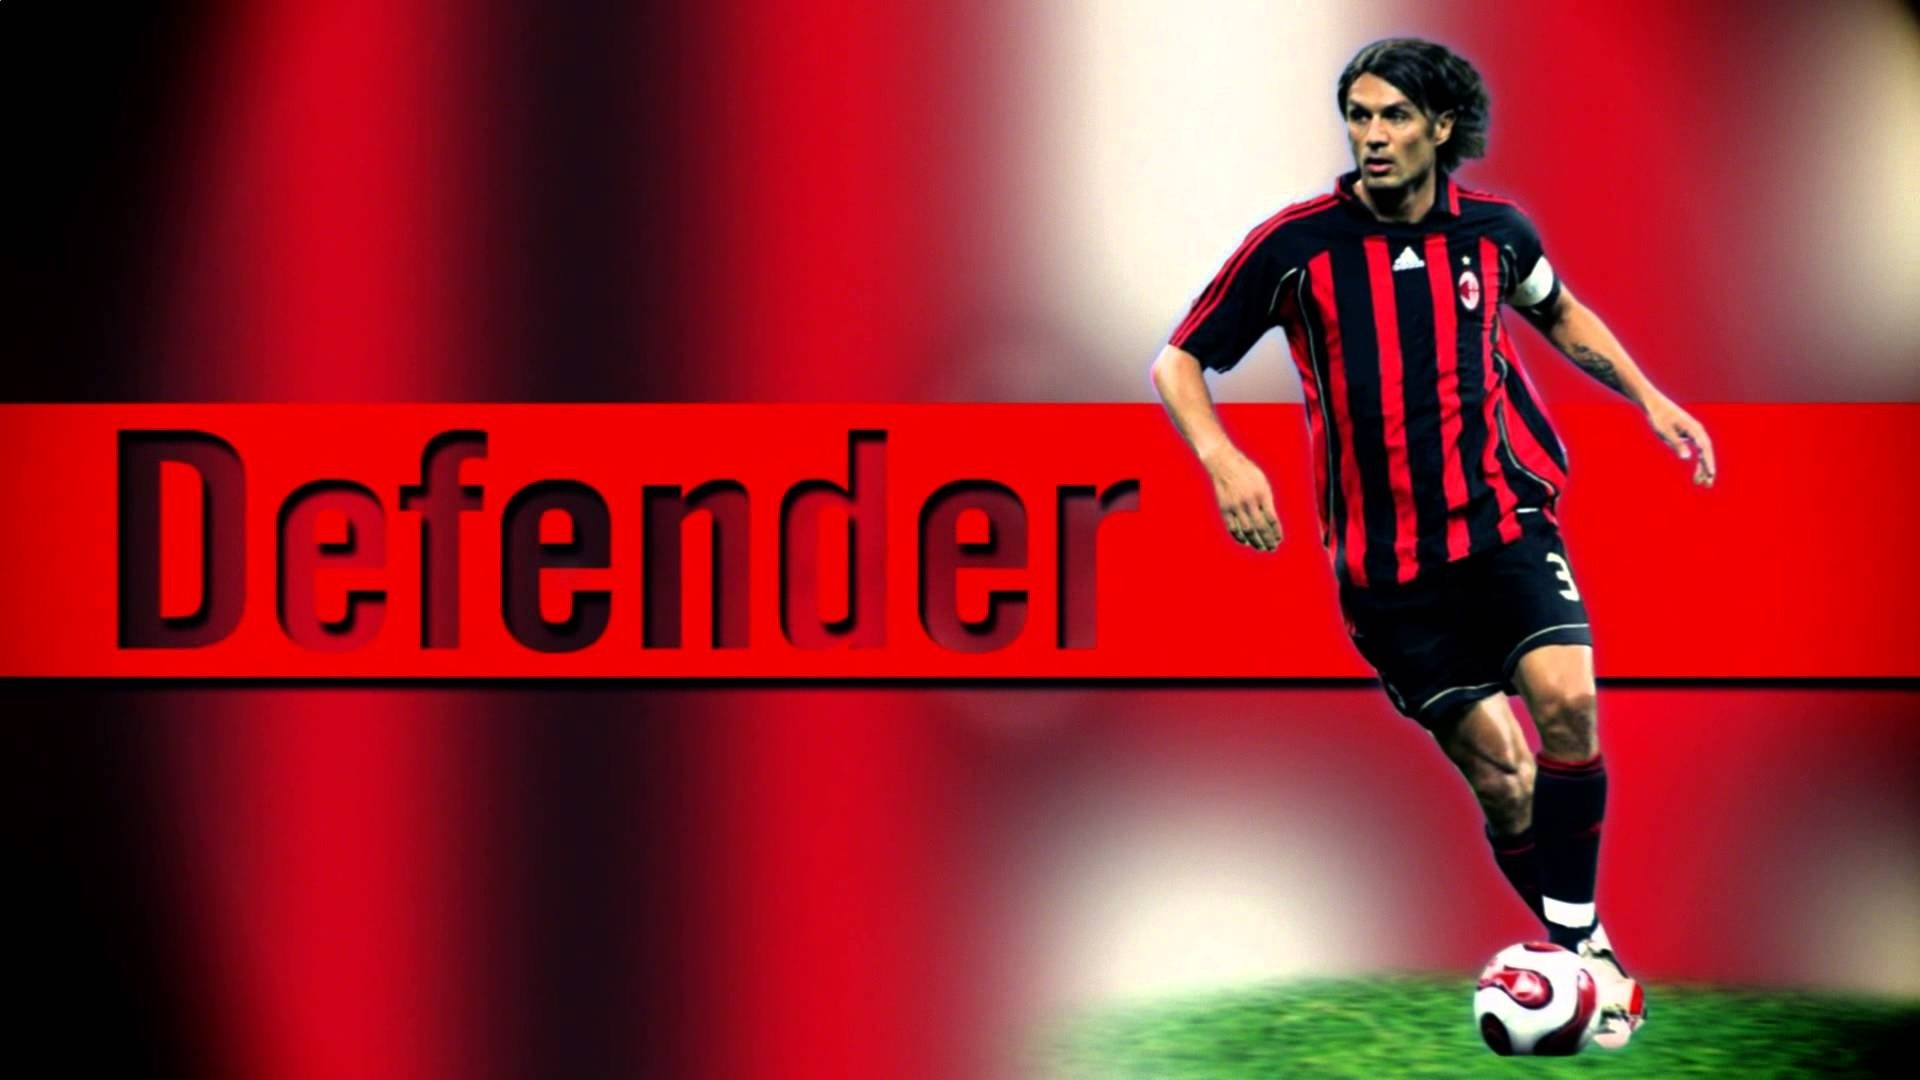 Fresh Paolo Maldini Wallpapers Soccer Wallpaper 1920x1080